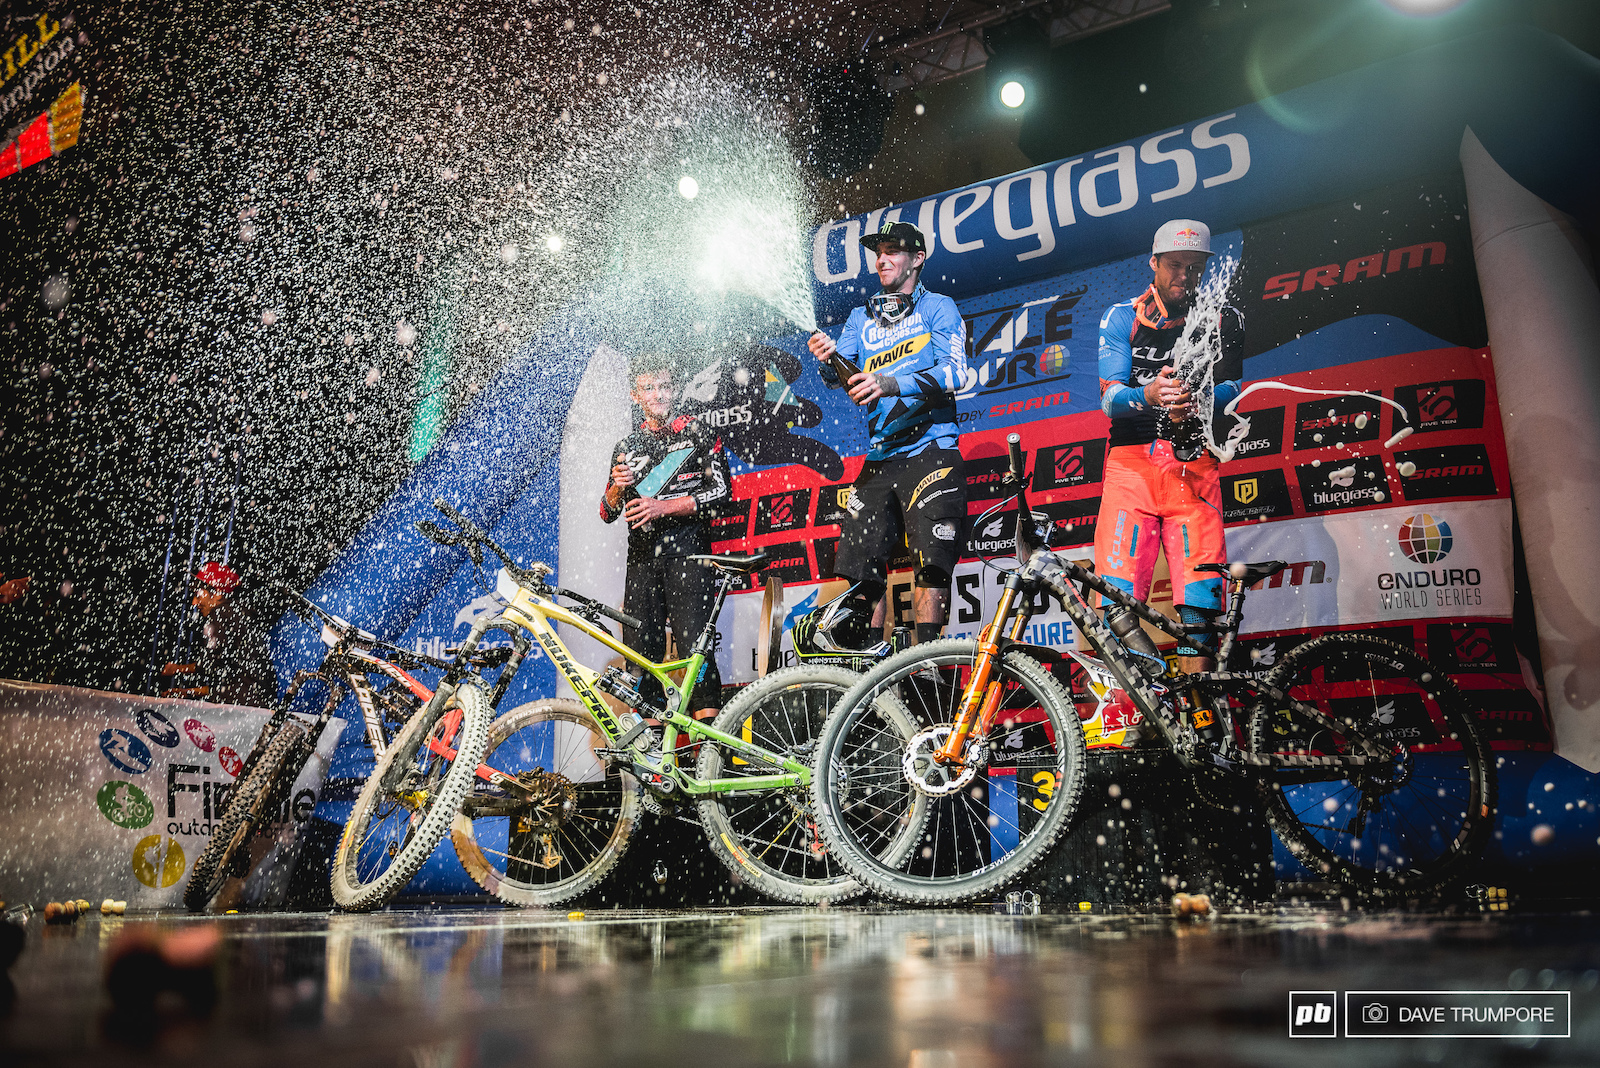 Sam Hill added to his legendary status this season with another World Championship title.